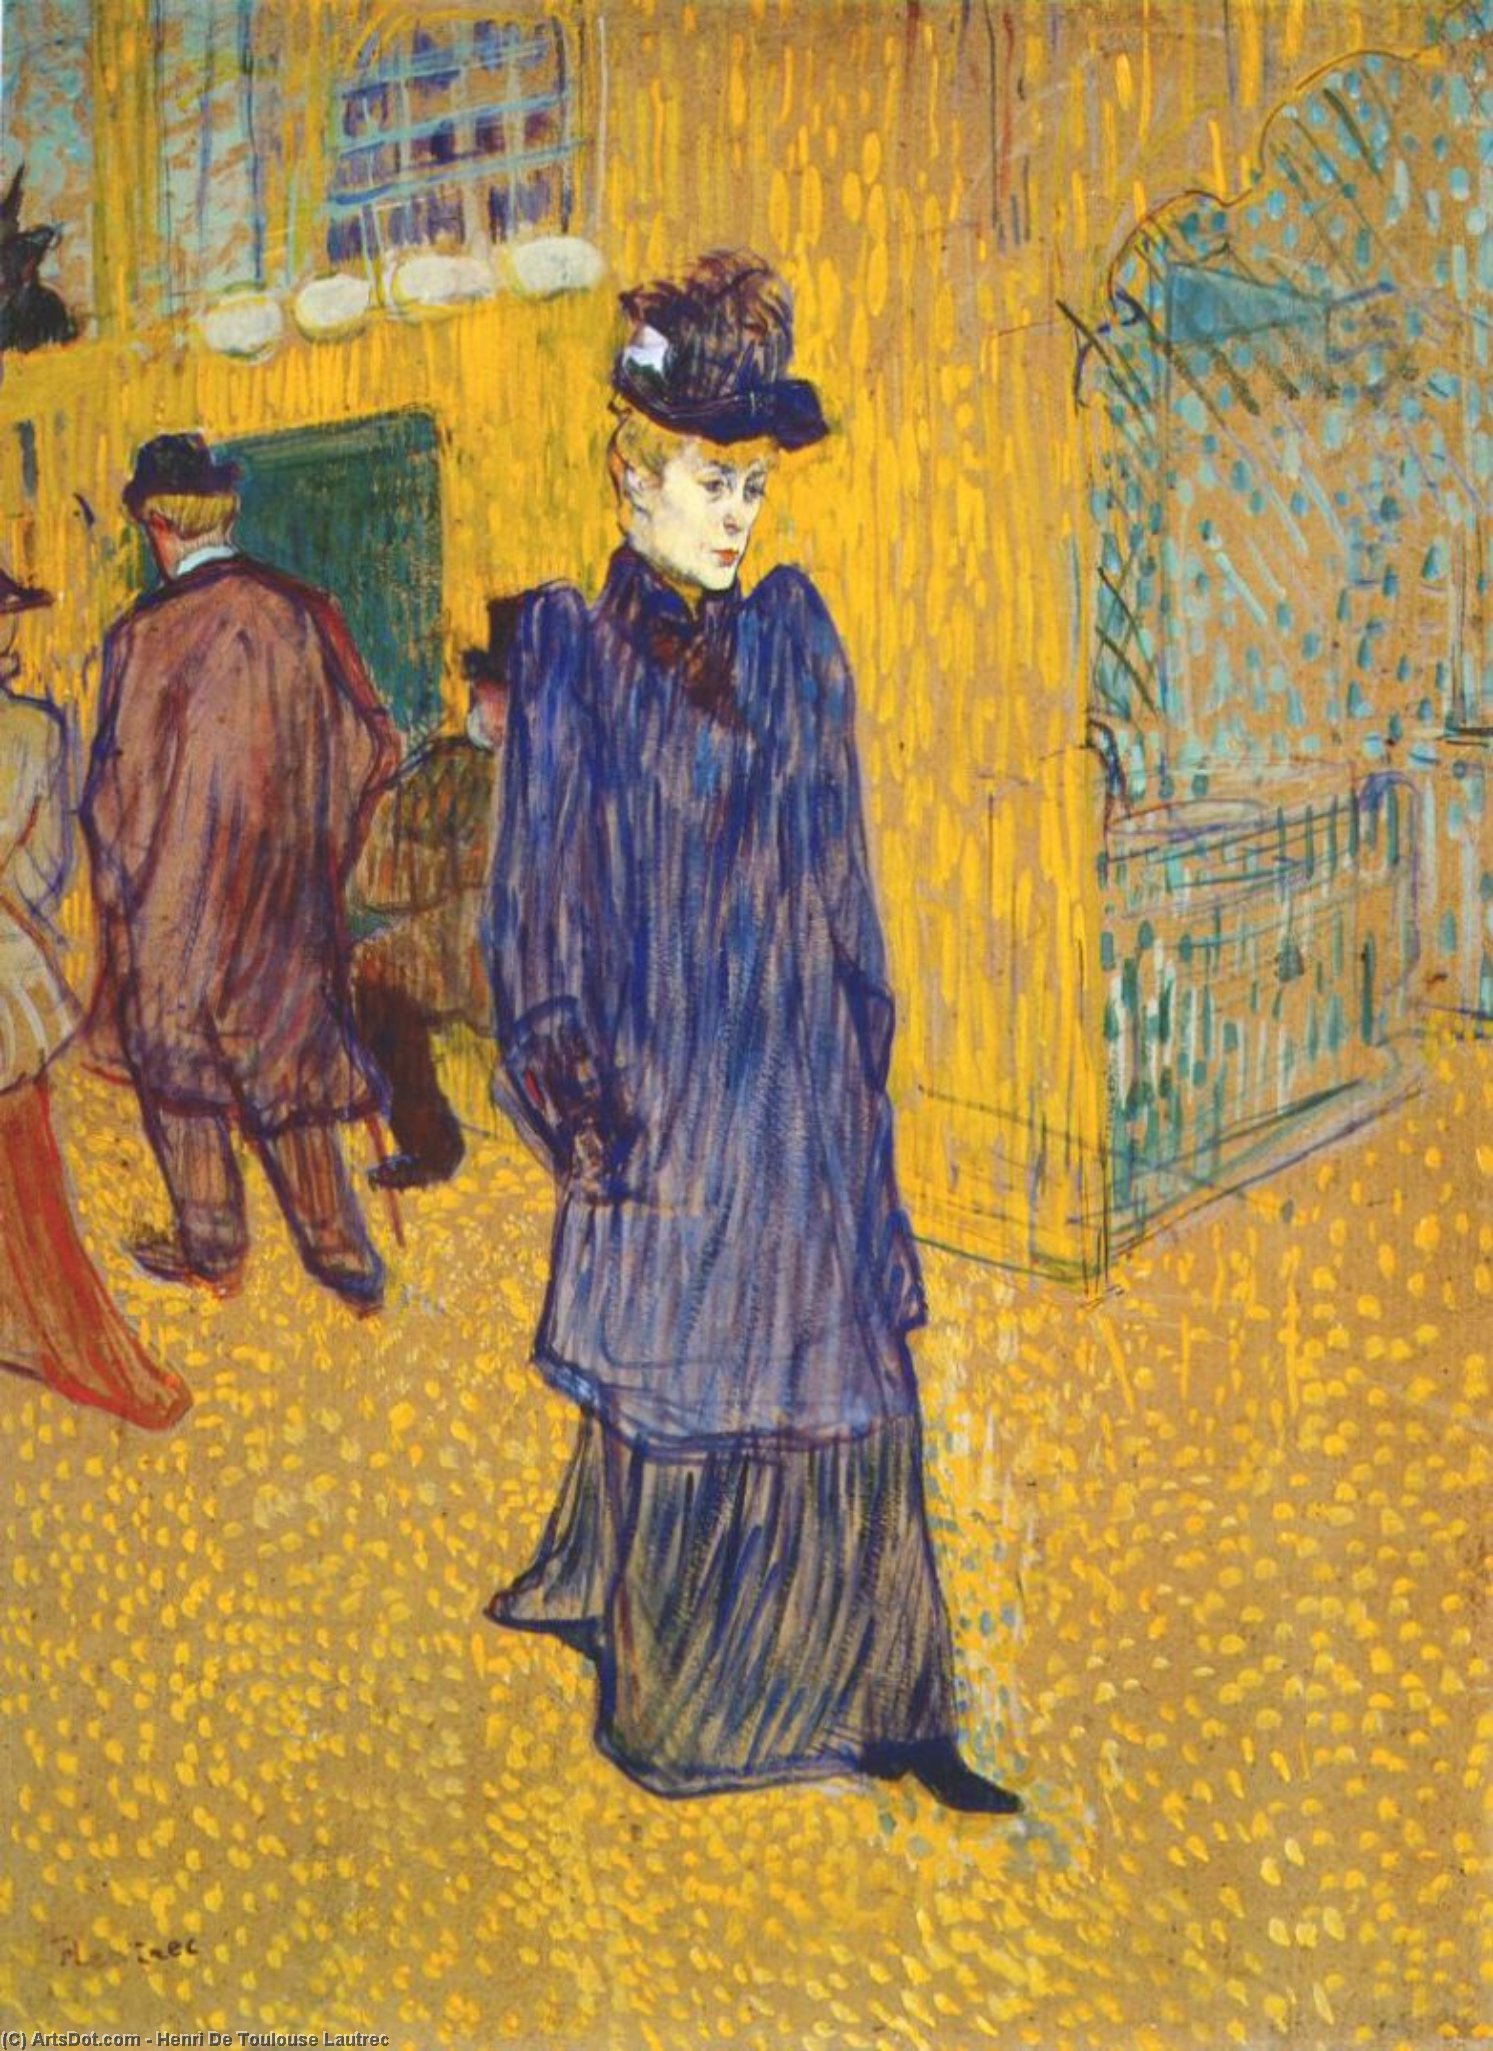 Jane Avril laissant le Moulin Rouge, Huile de Henri De Toulouse Lautrec (1864-1901, France)